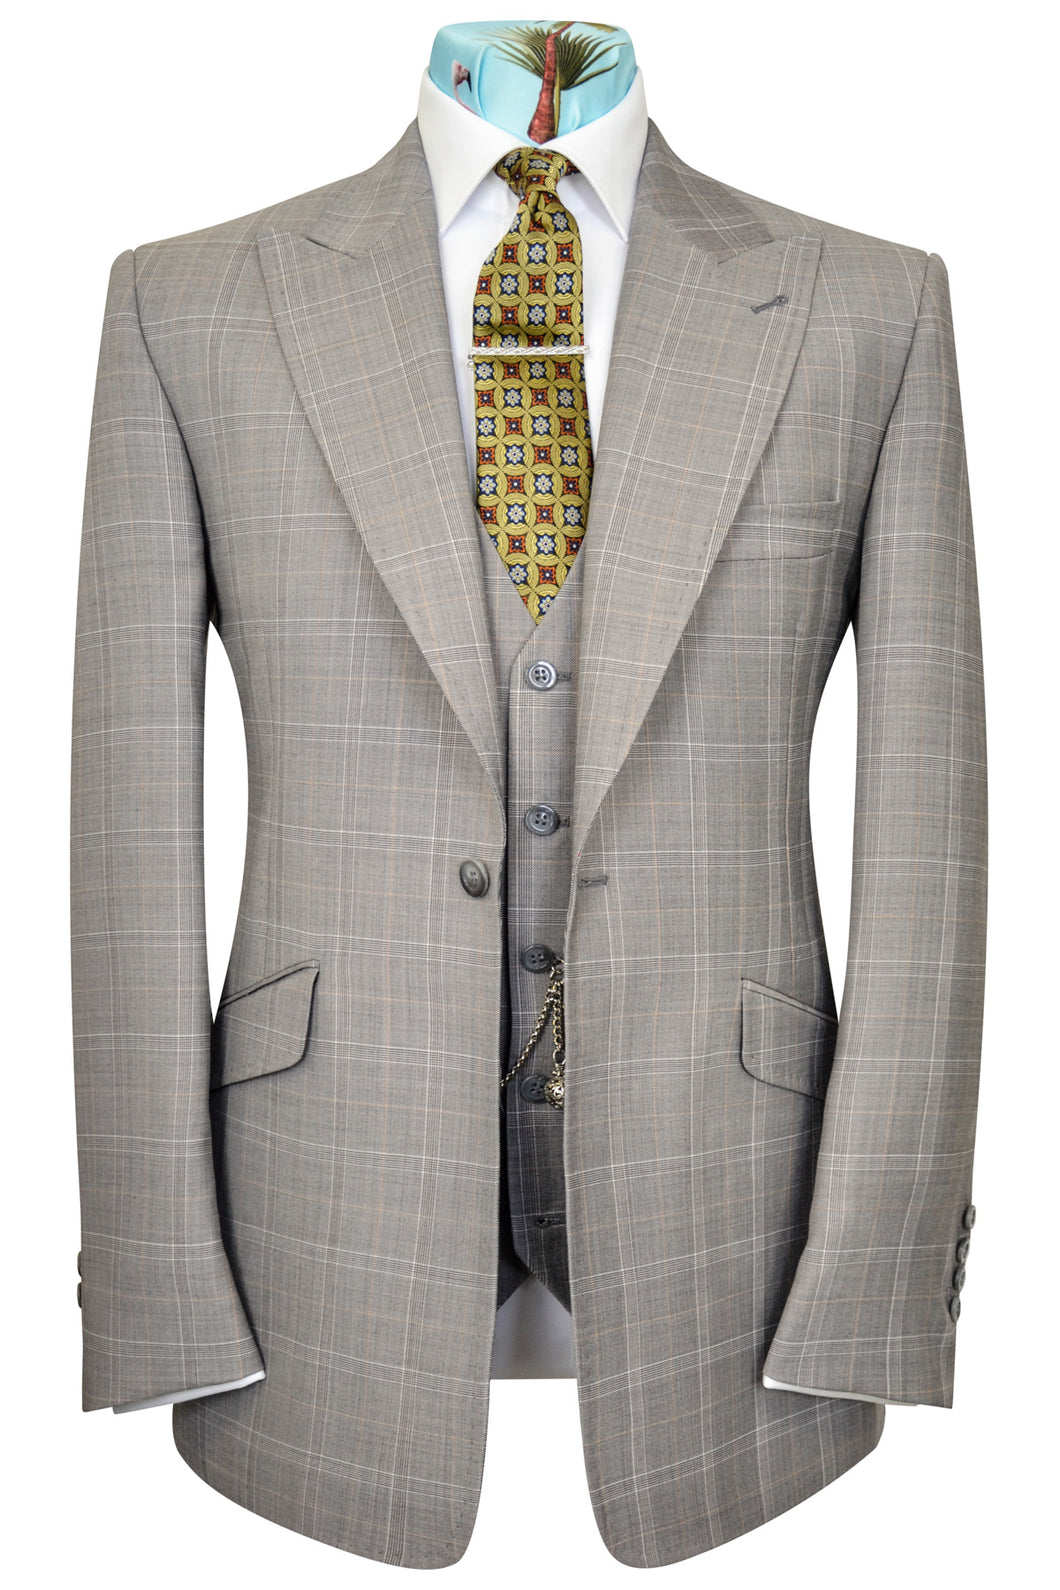 Orange over grey three piece peak lapel windowpane check suit